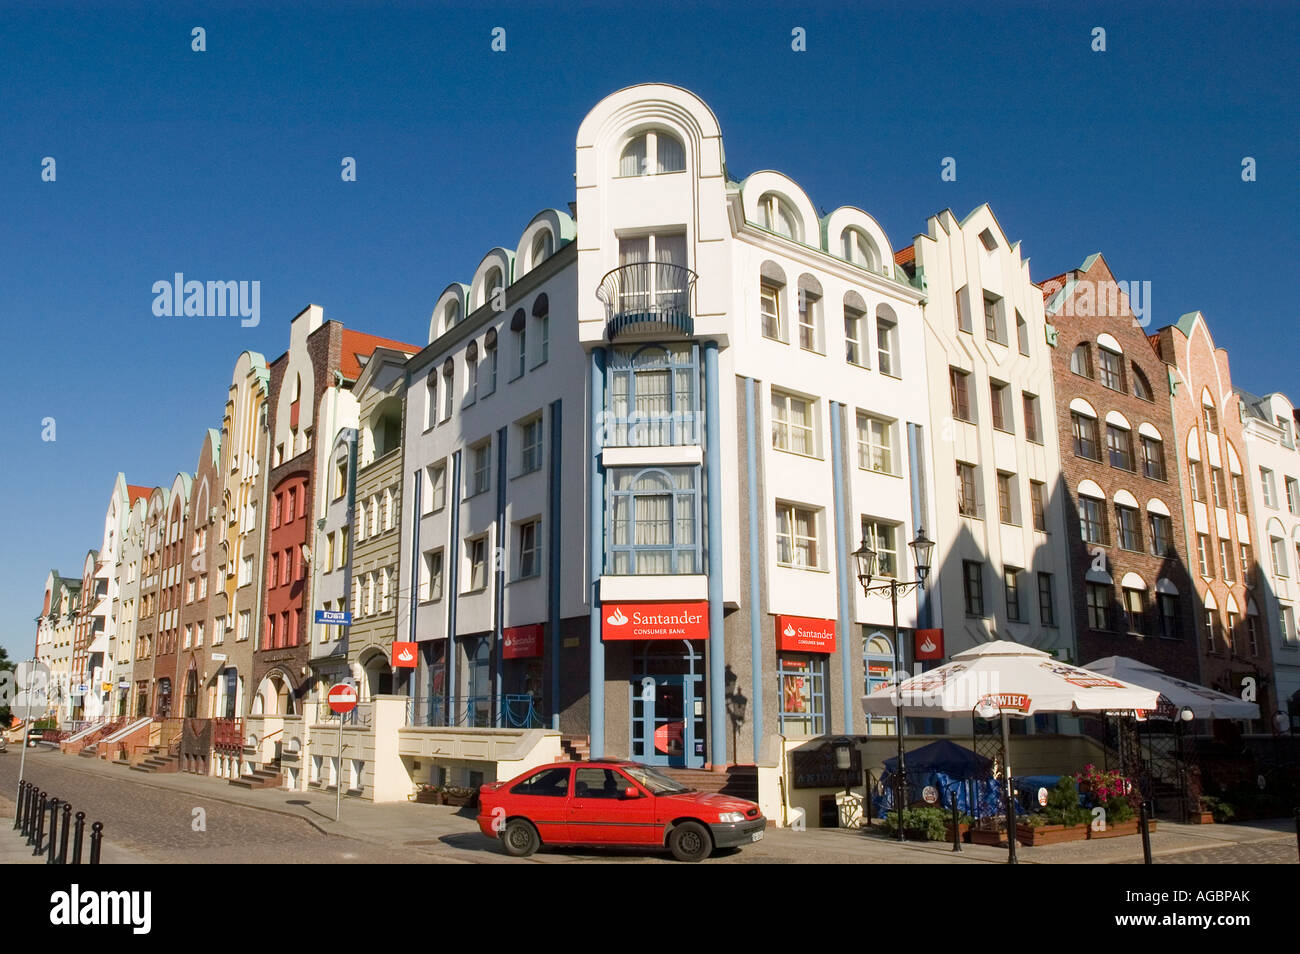 Modern stylised architecture in Elblag Old Town, Poland building house - Stock Image